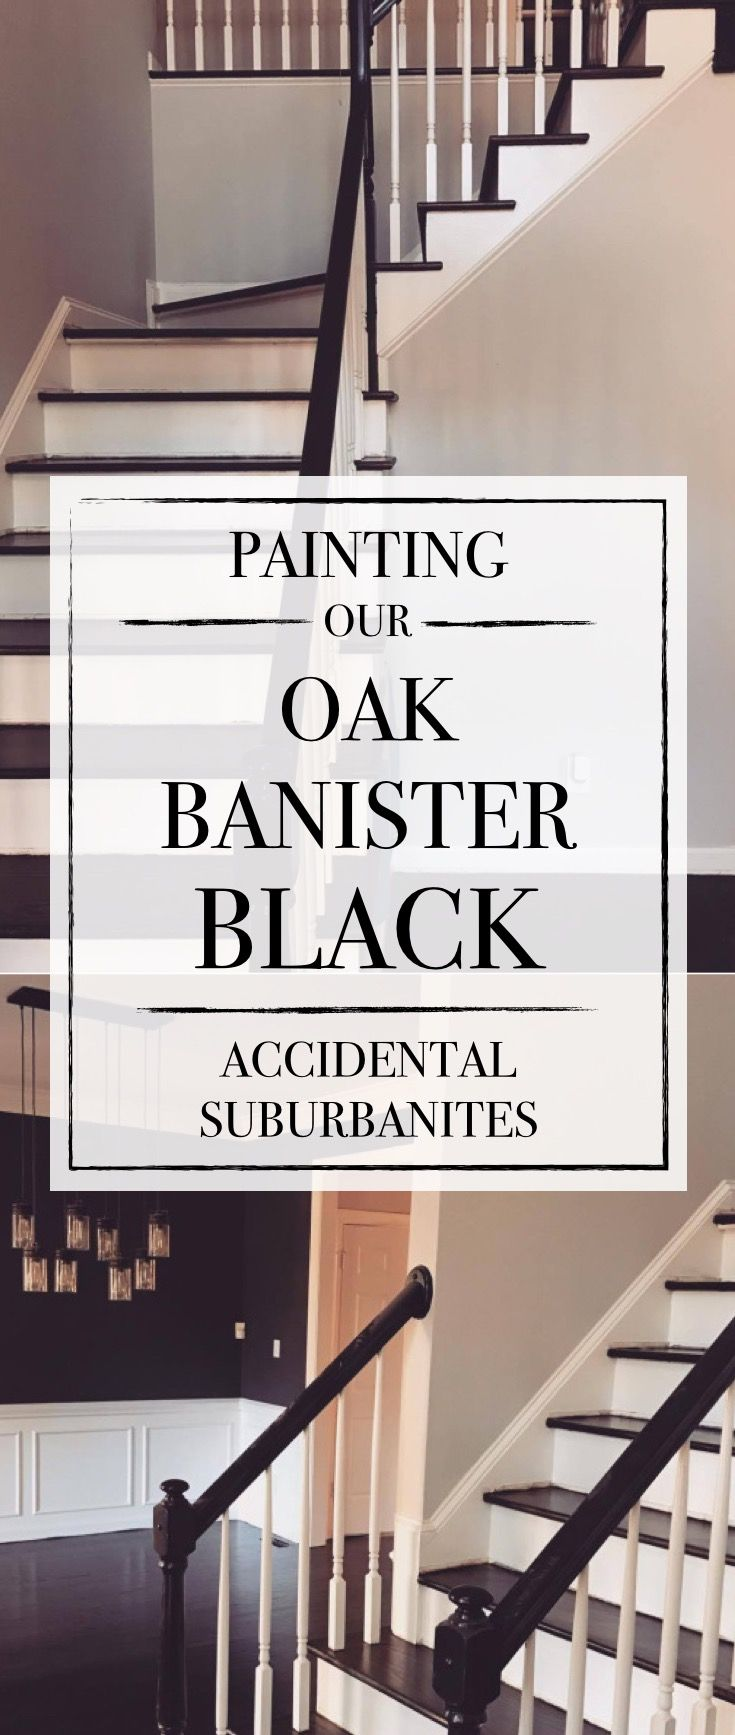 Painting our Oak Banister Hand Railing Black